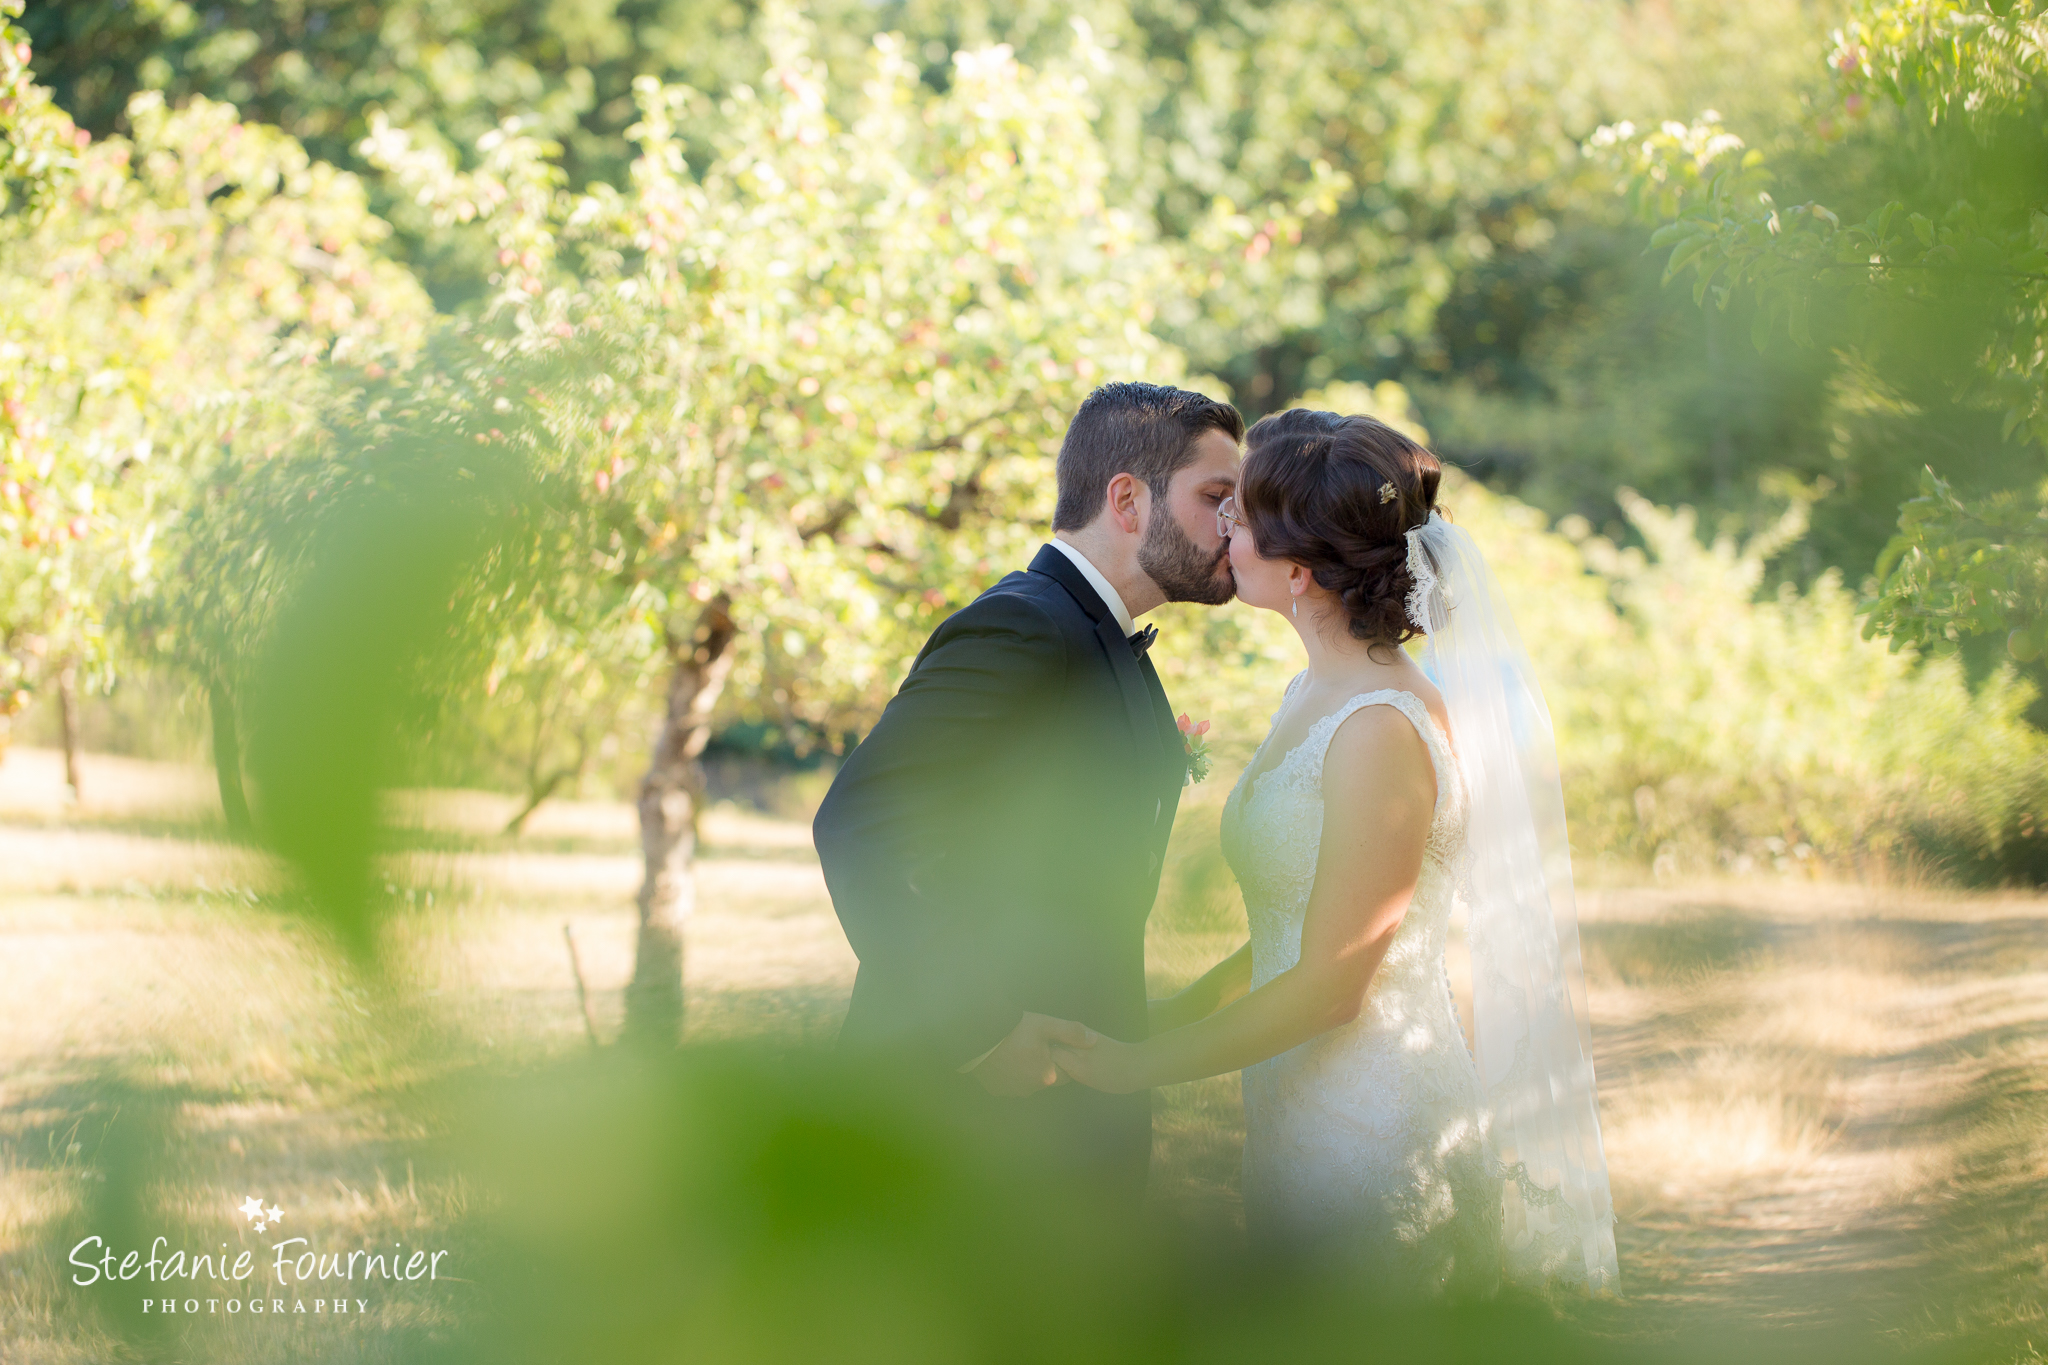 Julie Amp Allan S Wedding At Merridale Ciderworks Stefanie Fournier Wedding Photographer